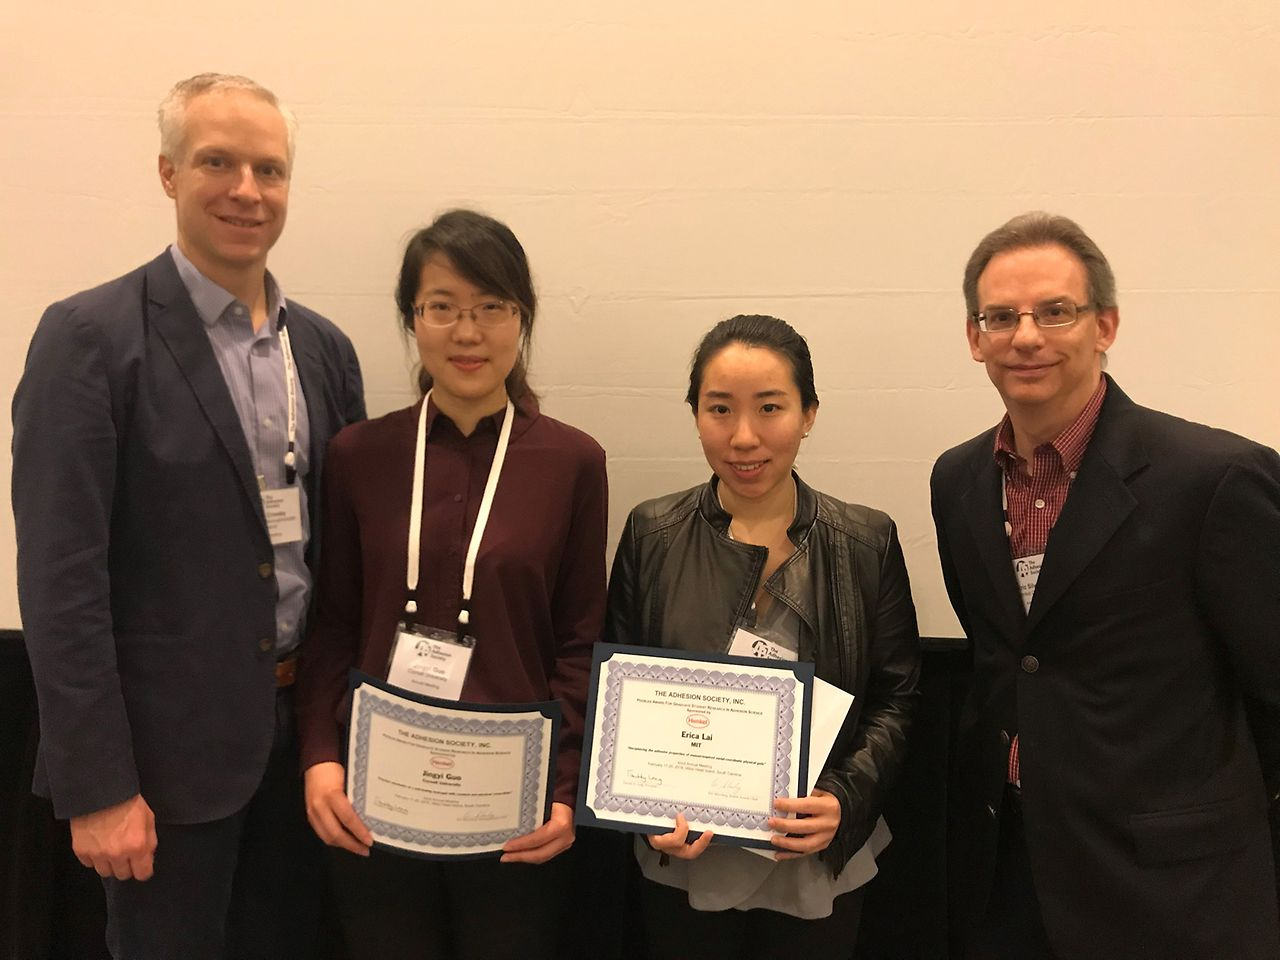 Professor Al Crosby (left) and Henkel's Eric Silverberg presented the awards at the annual meeting of the Adhesion Society to (L to R) Jingyi Guo and Erika Lai.